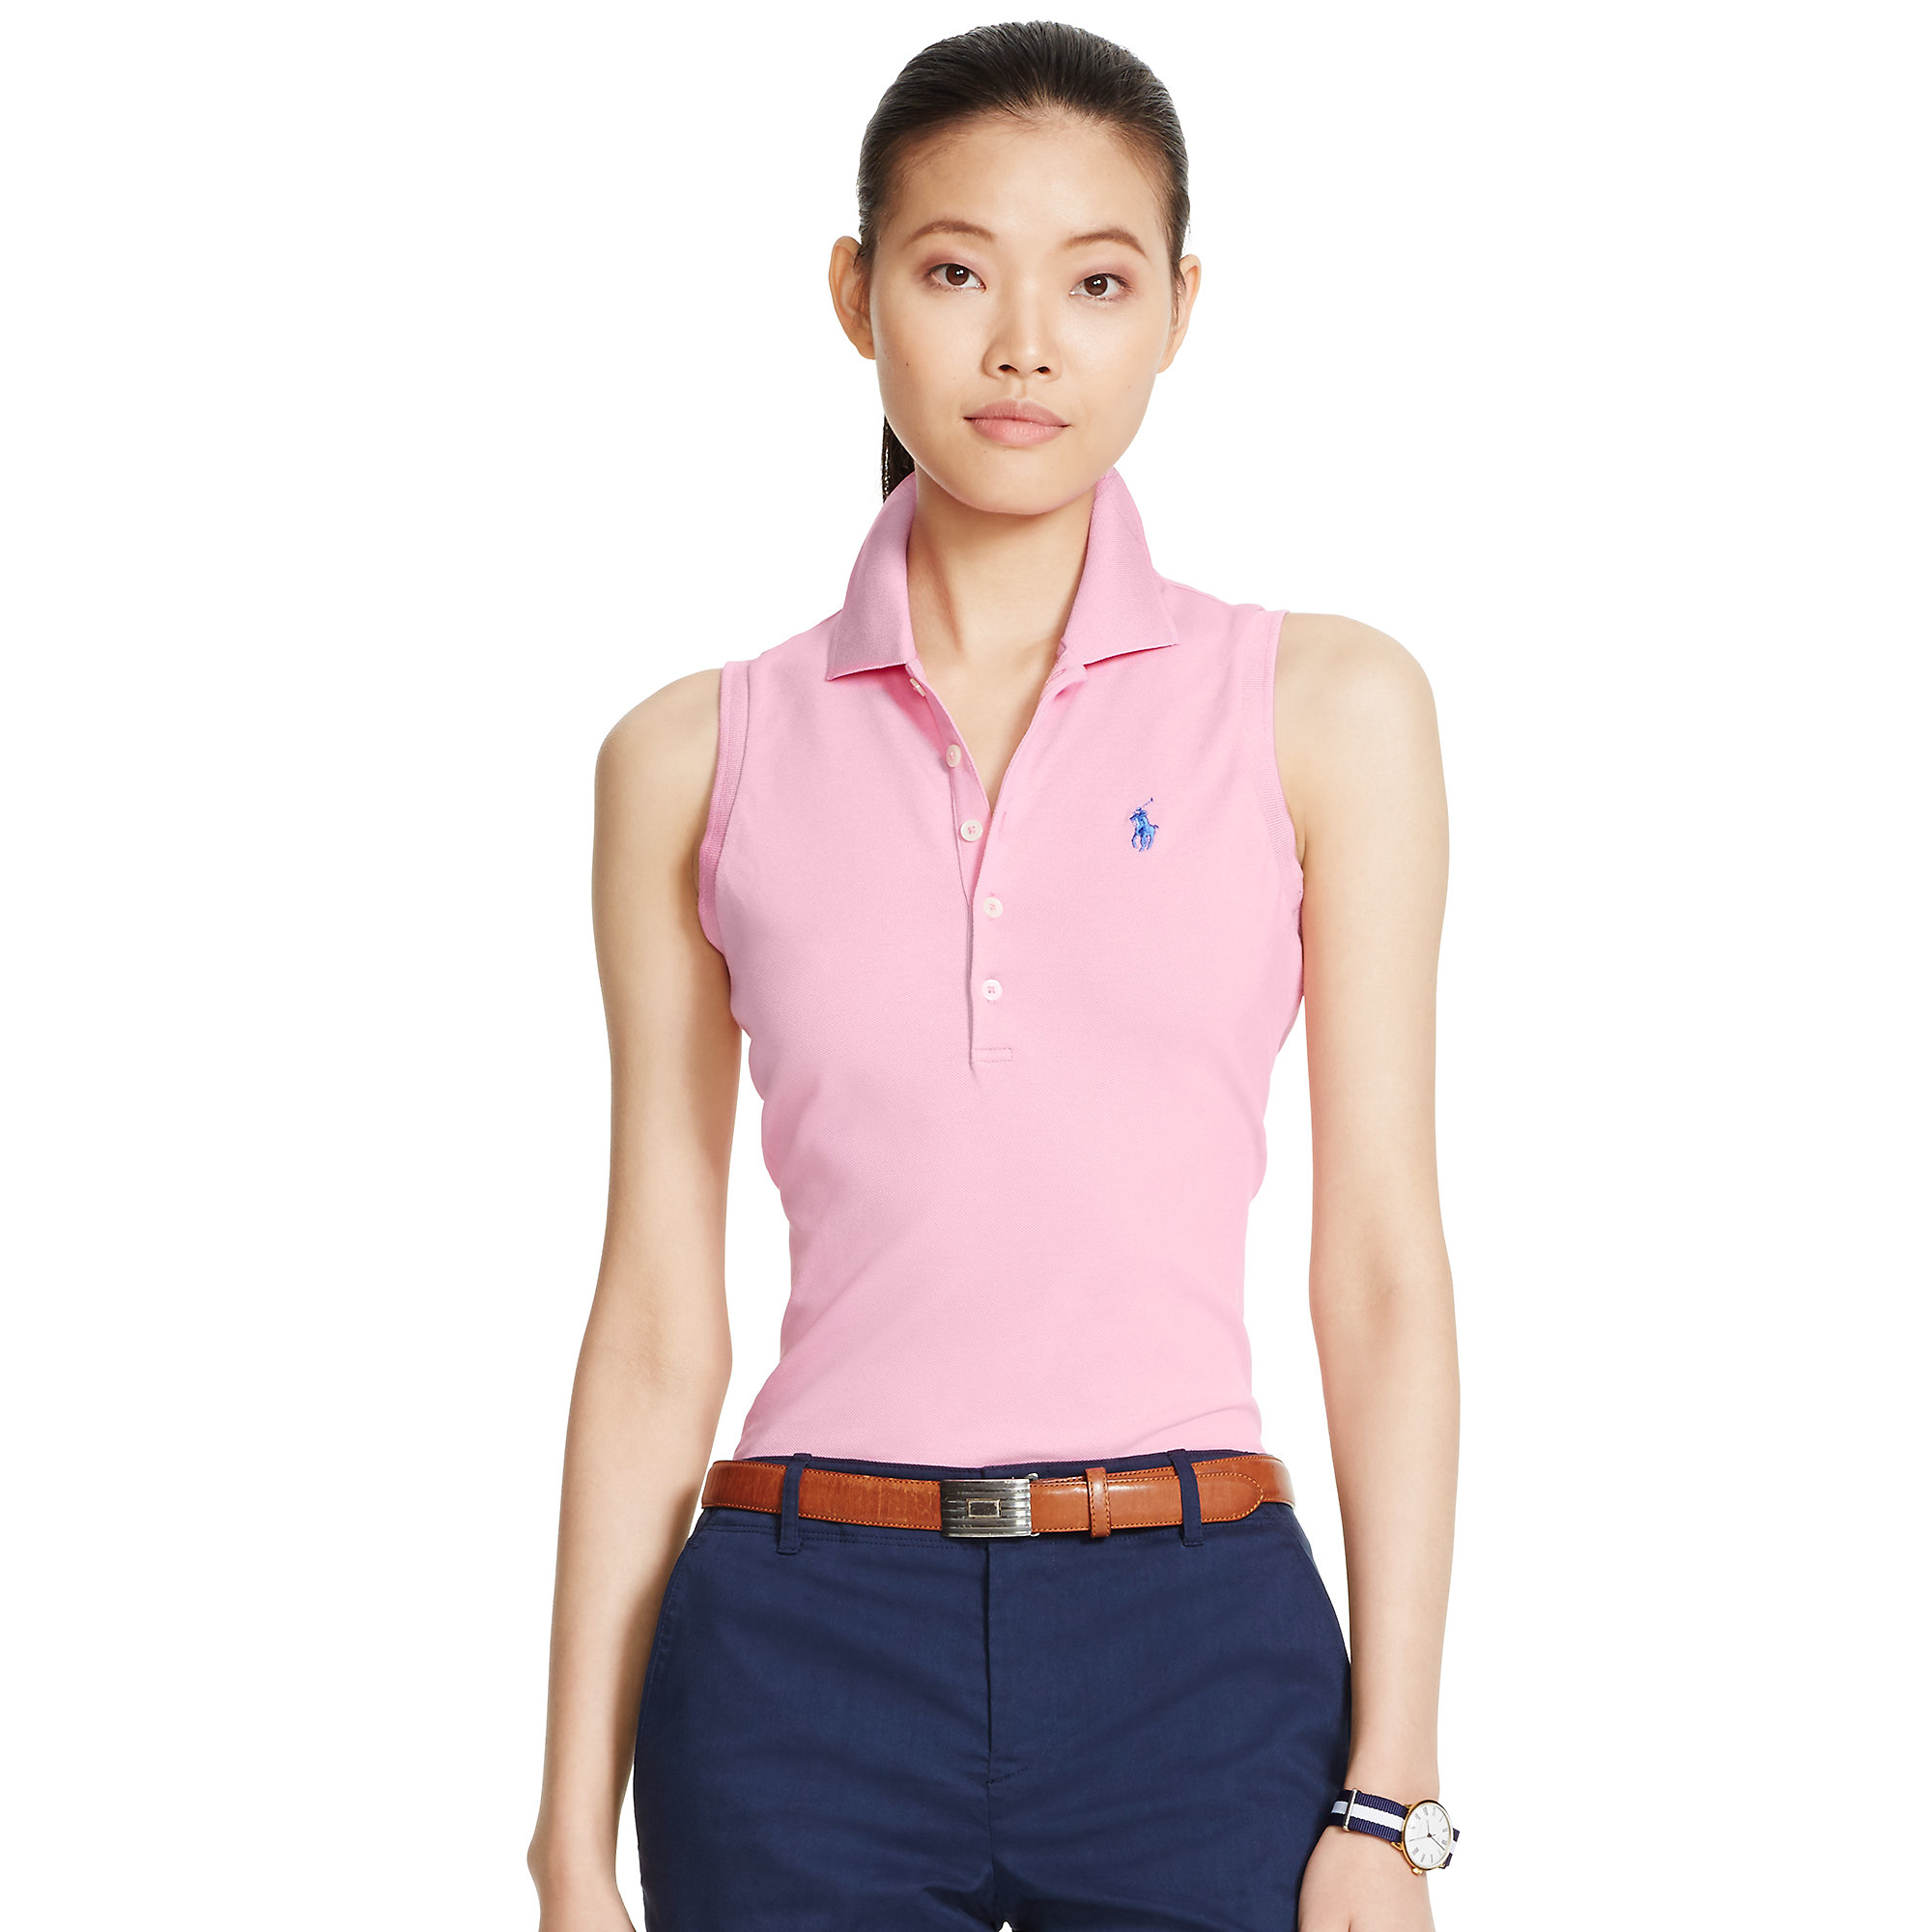 ralph lauren polo tank tops for women polo ralph lauren ...